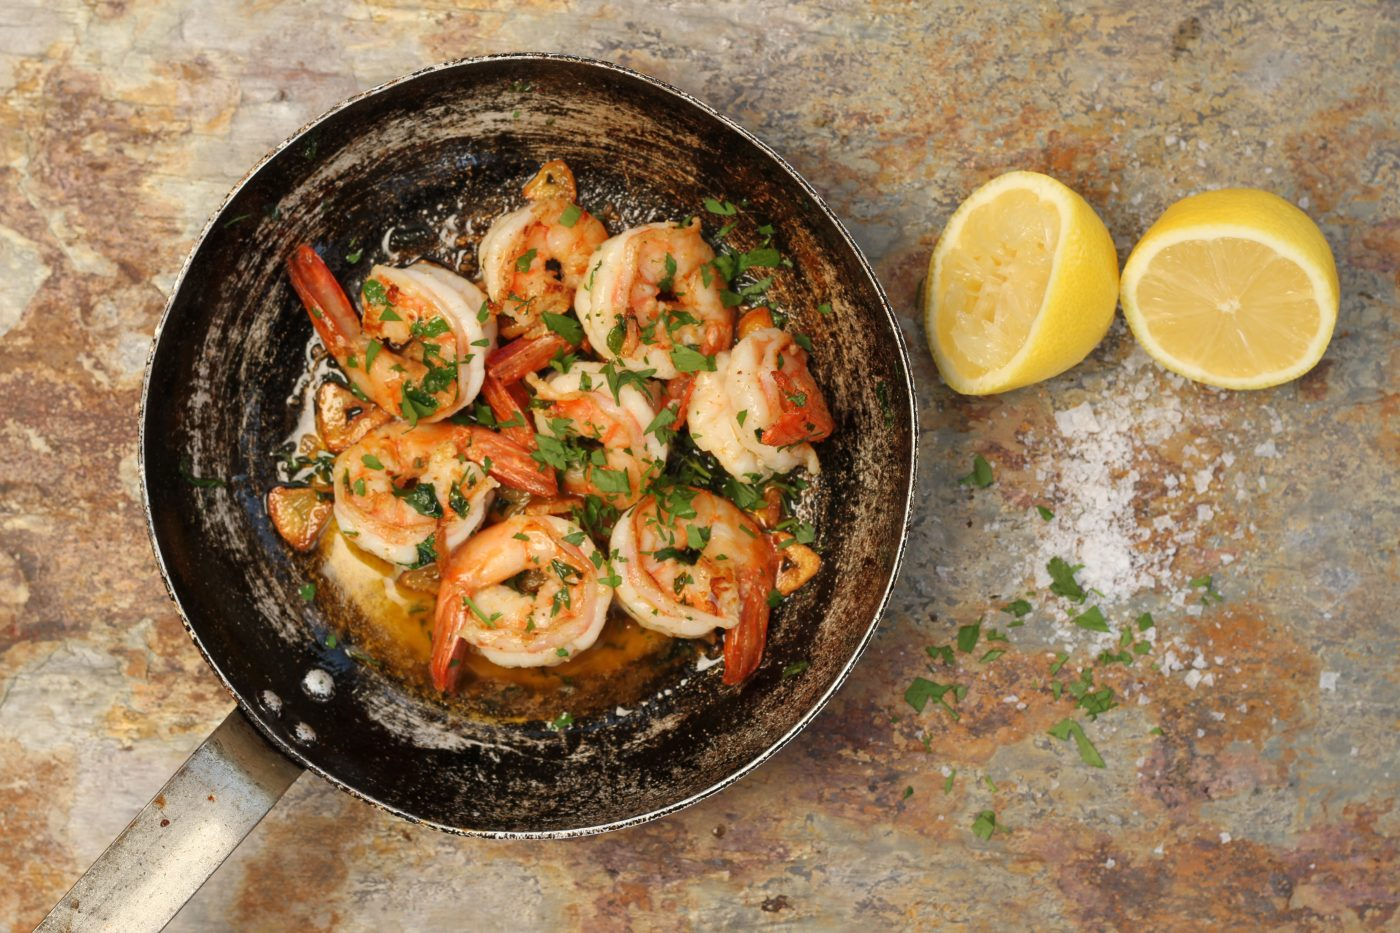 Prawns with Garlic and Lemon